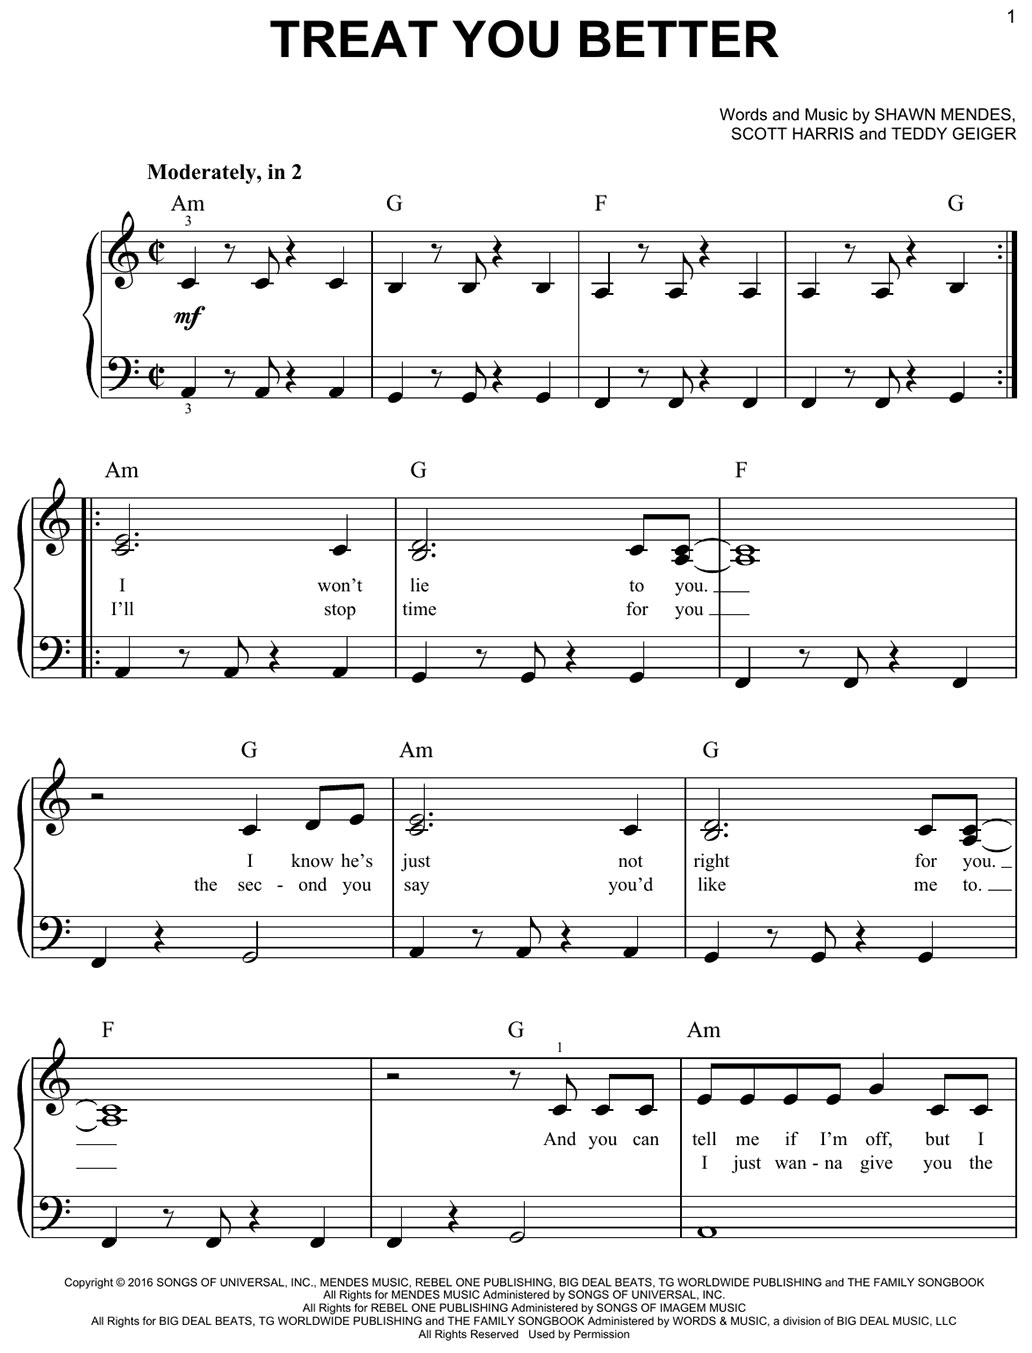 treat you better sheet music notes